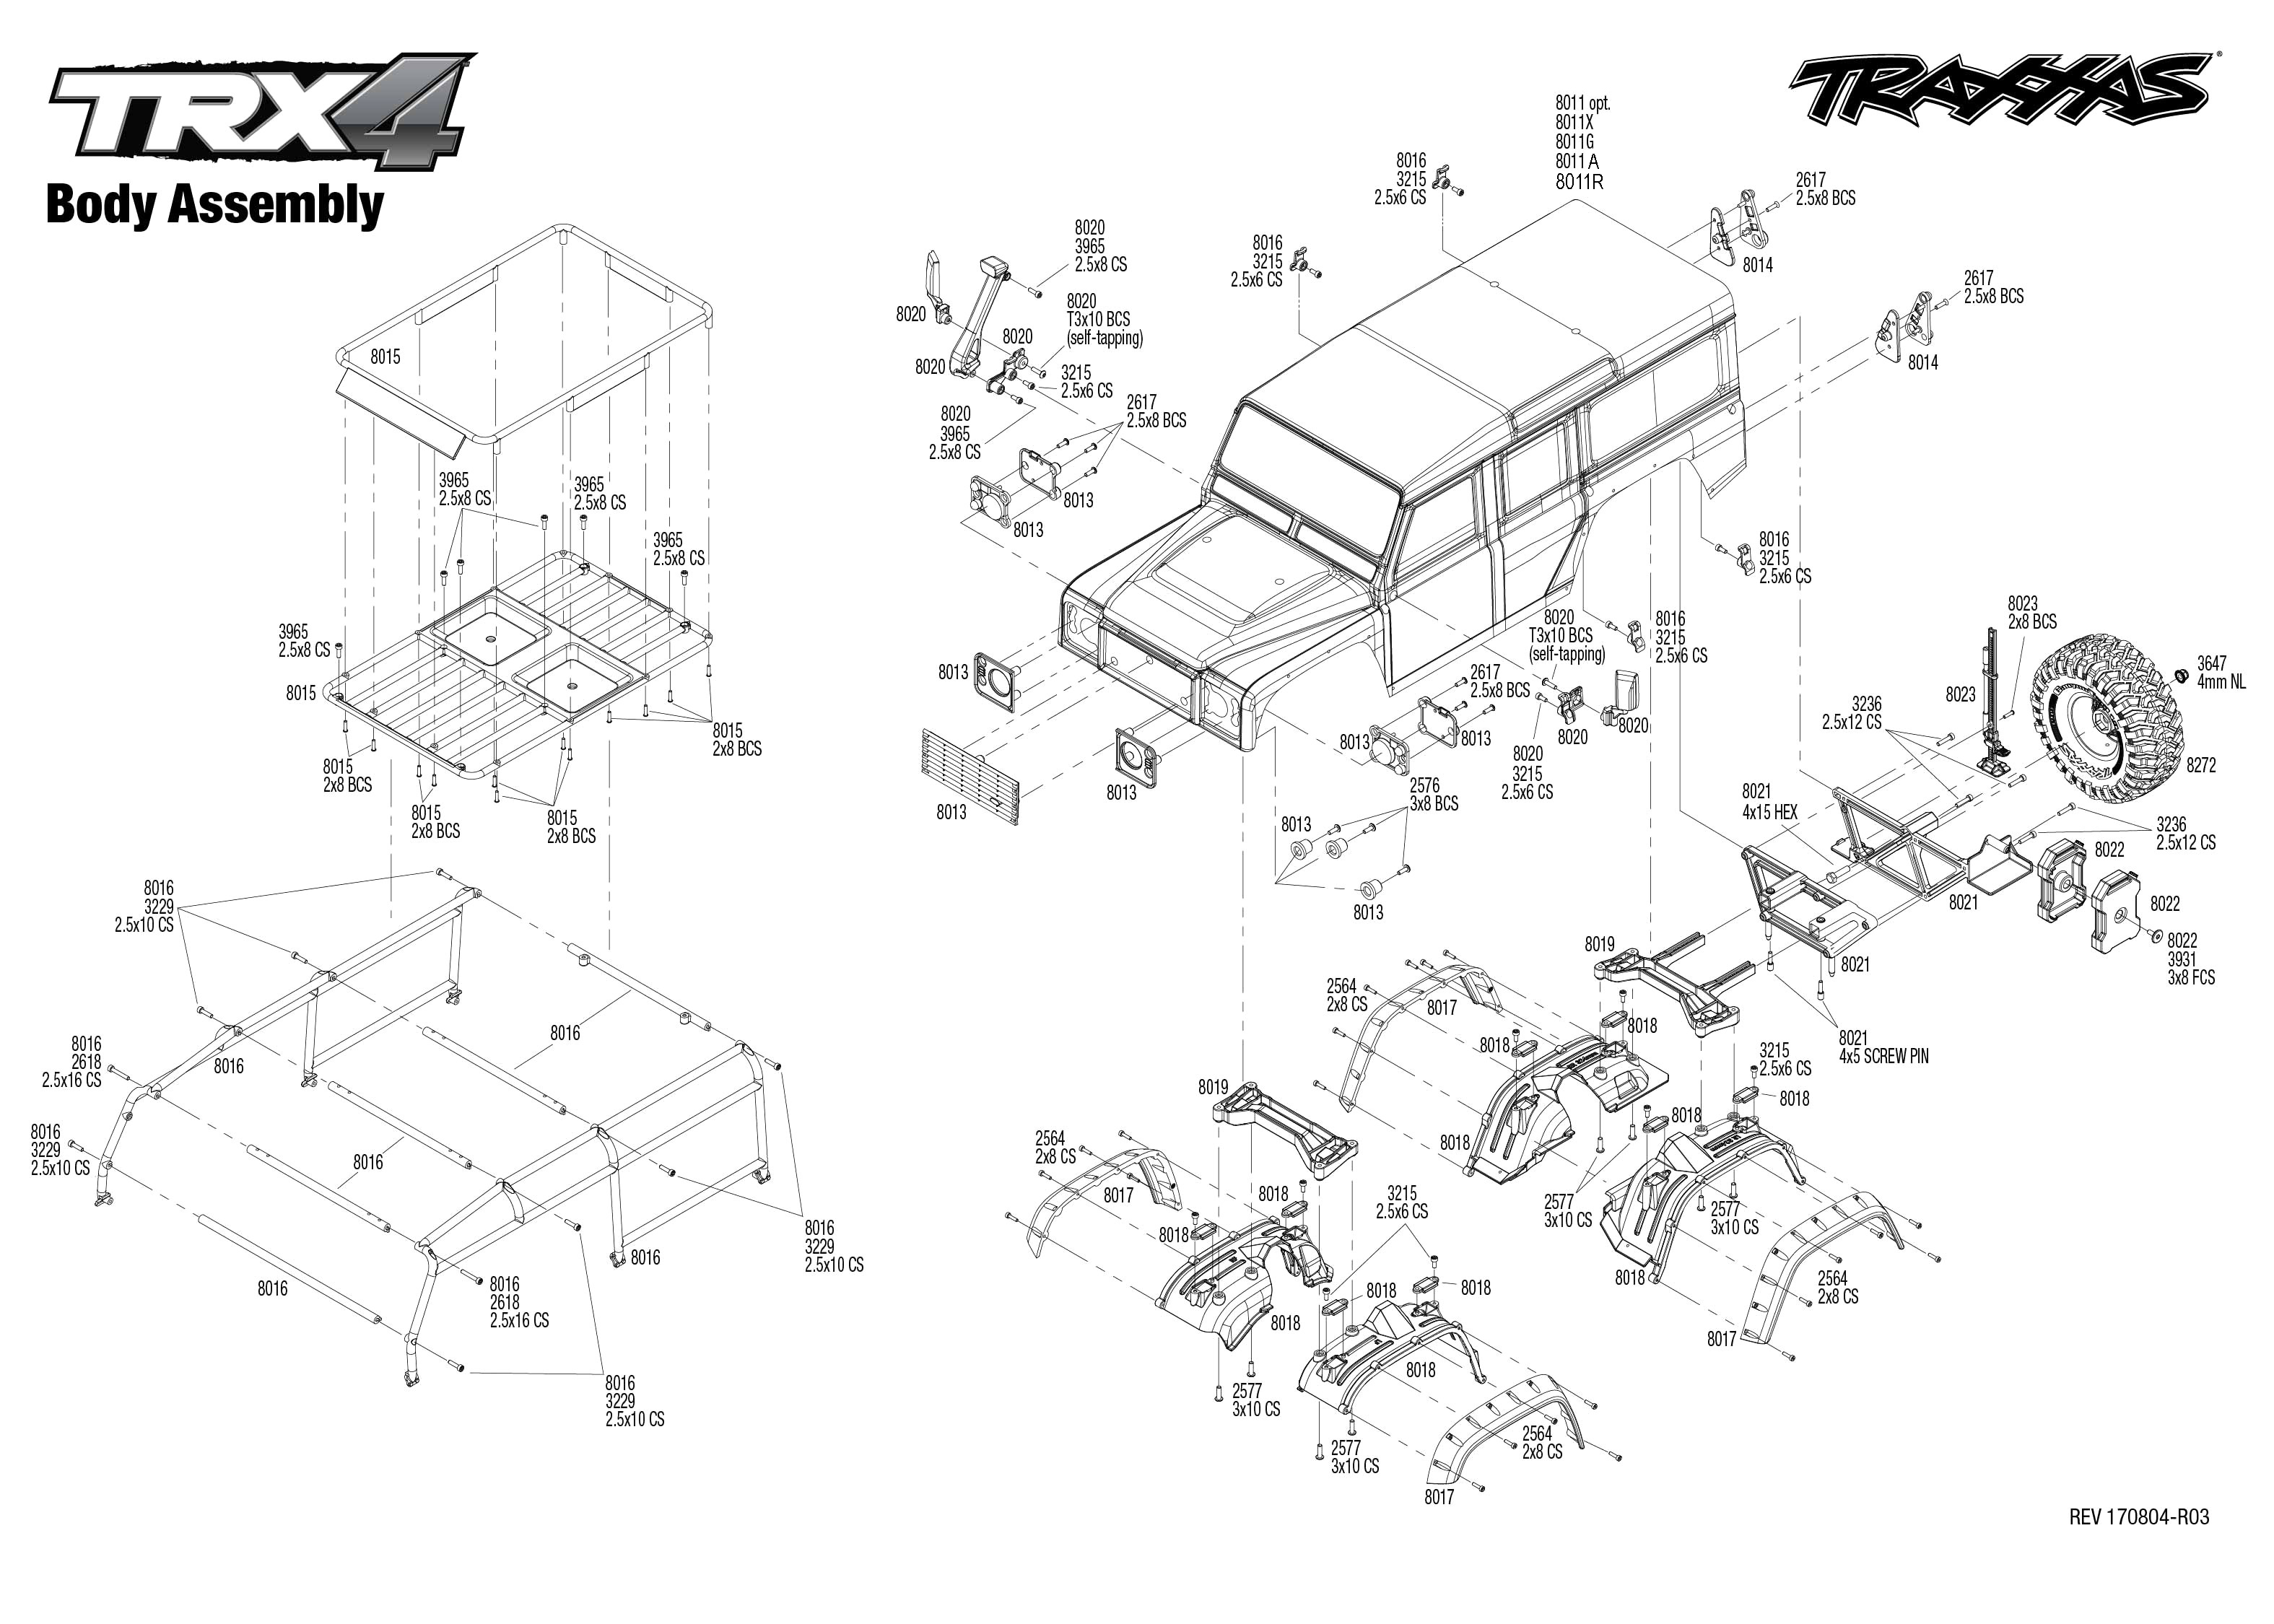 exploded view traxxas trx 4 land rover defender body [ 3150 x 2250 Pixel ]